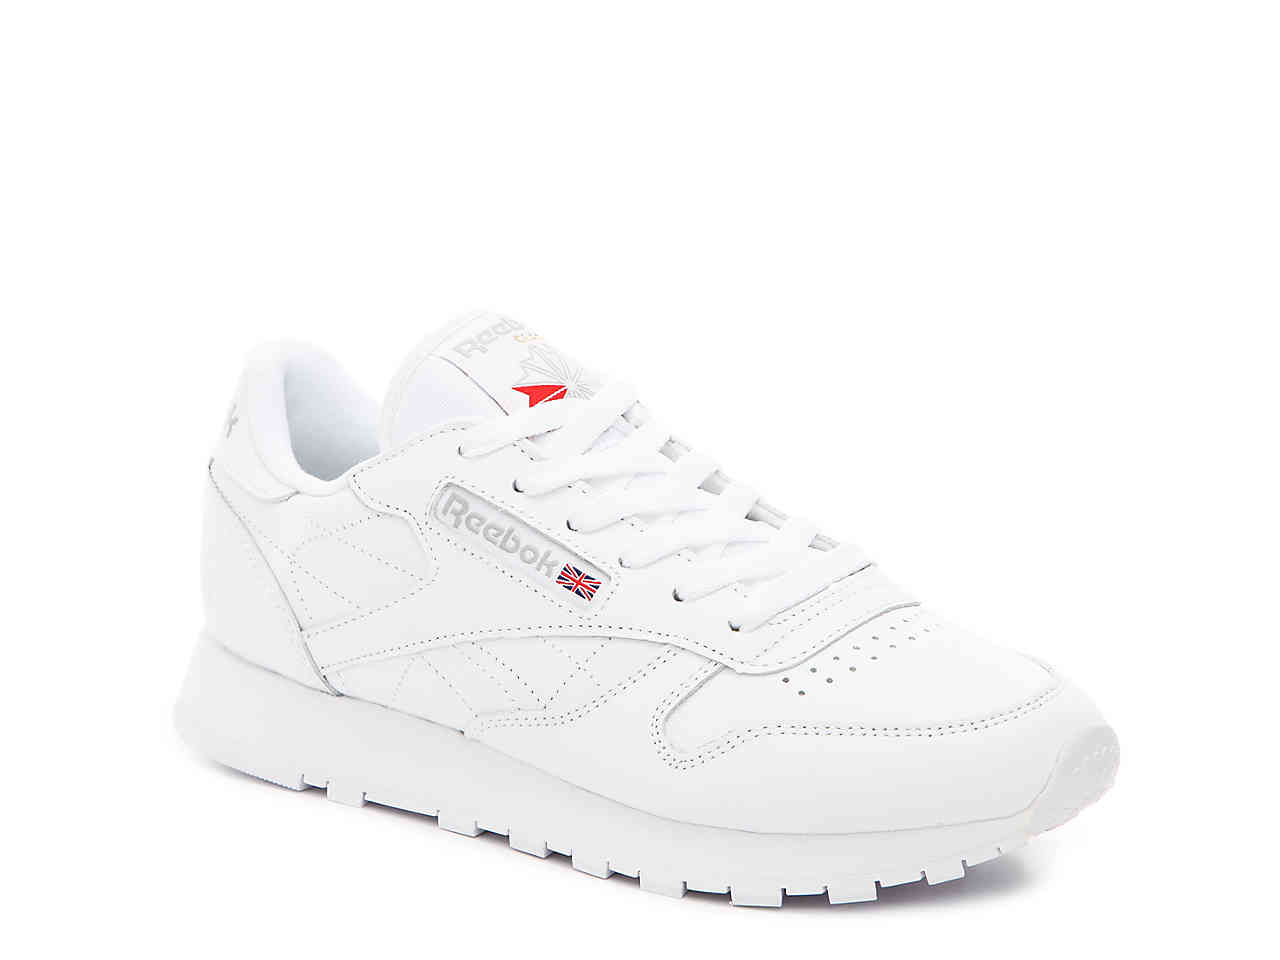 white classic reebok sneakers - 57% OFF